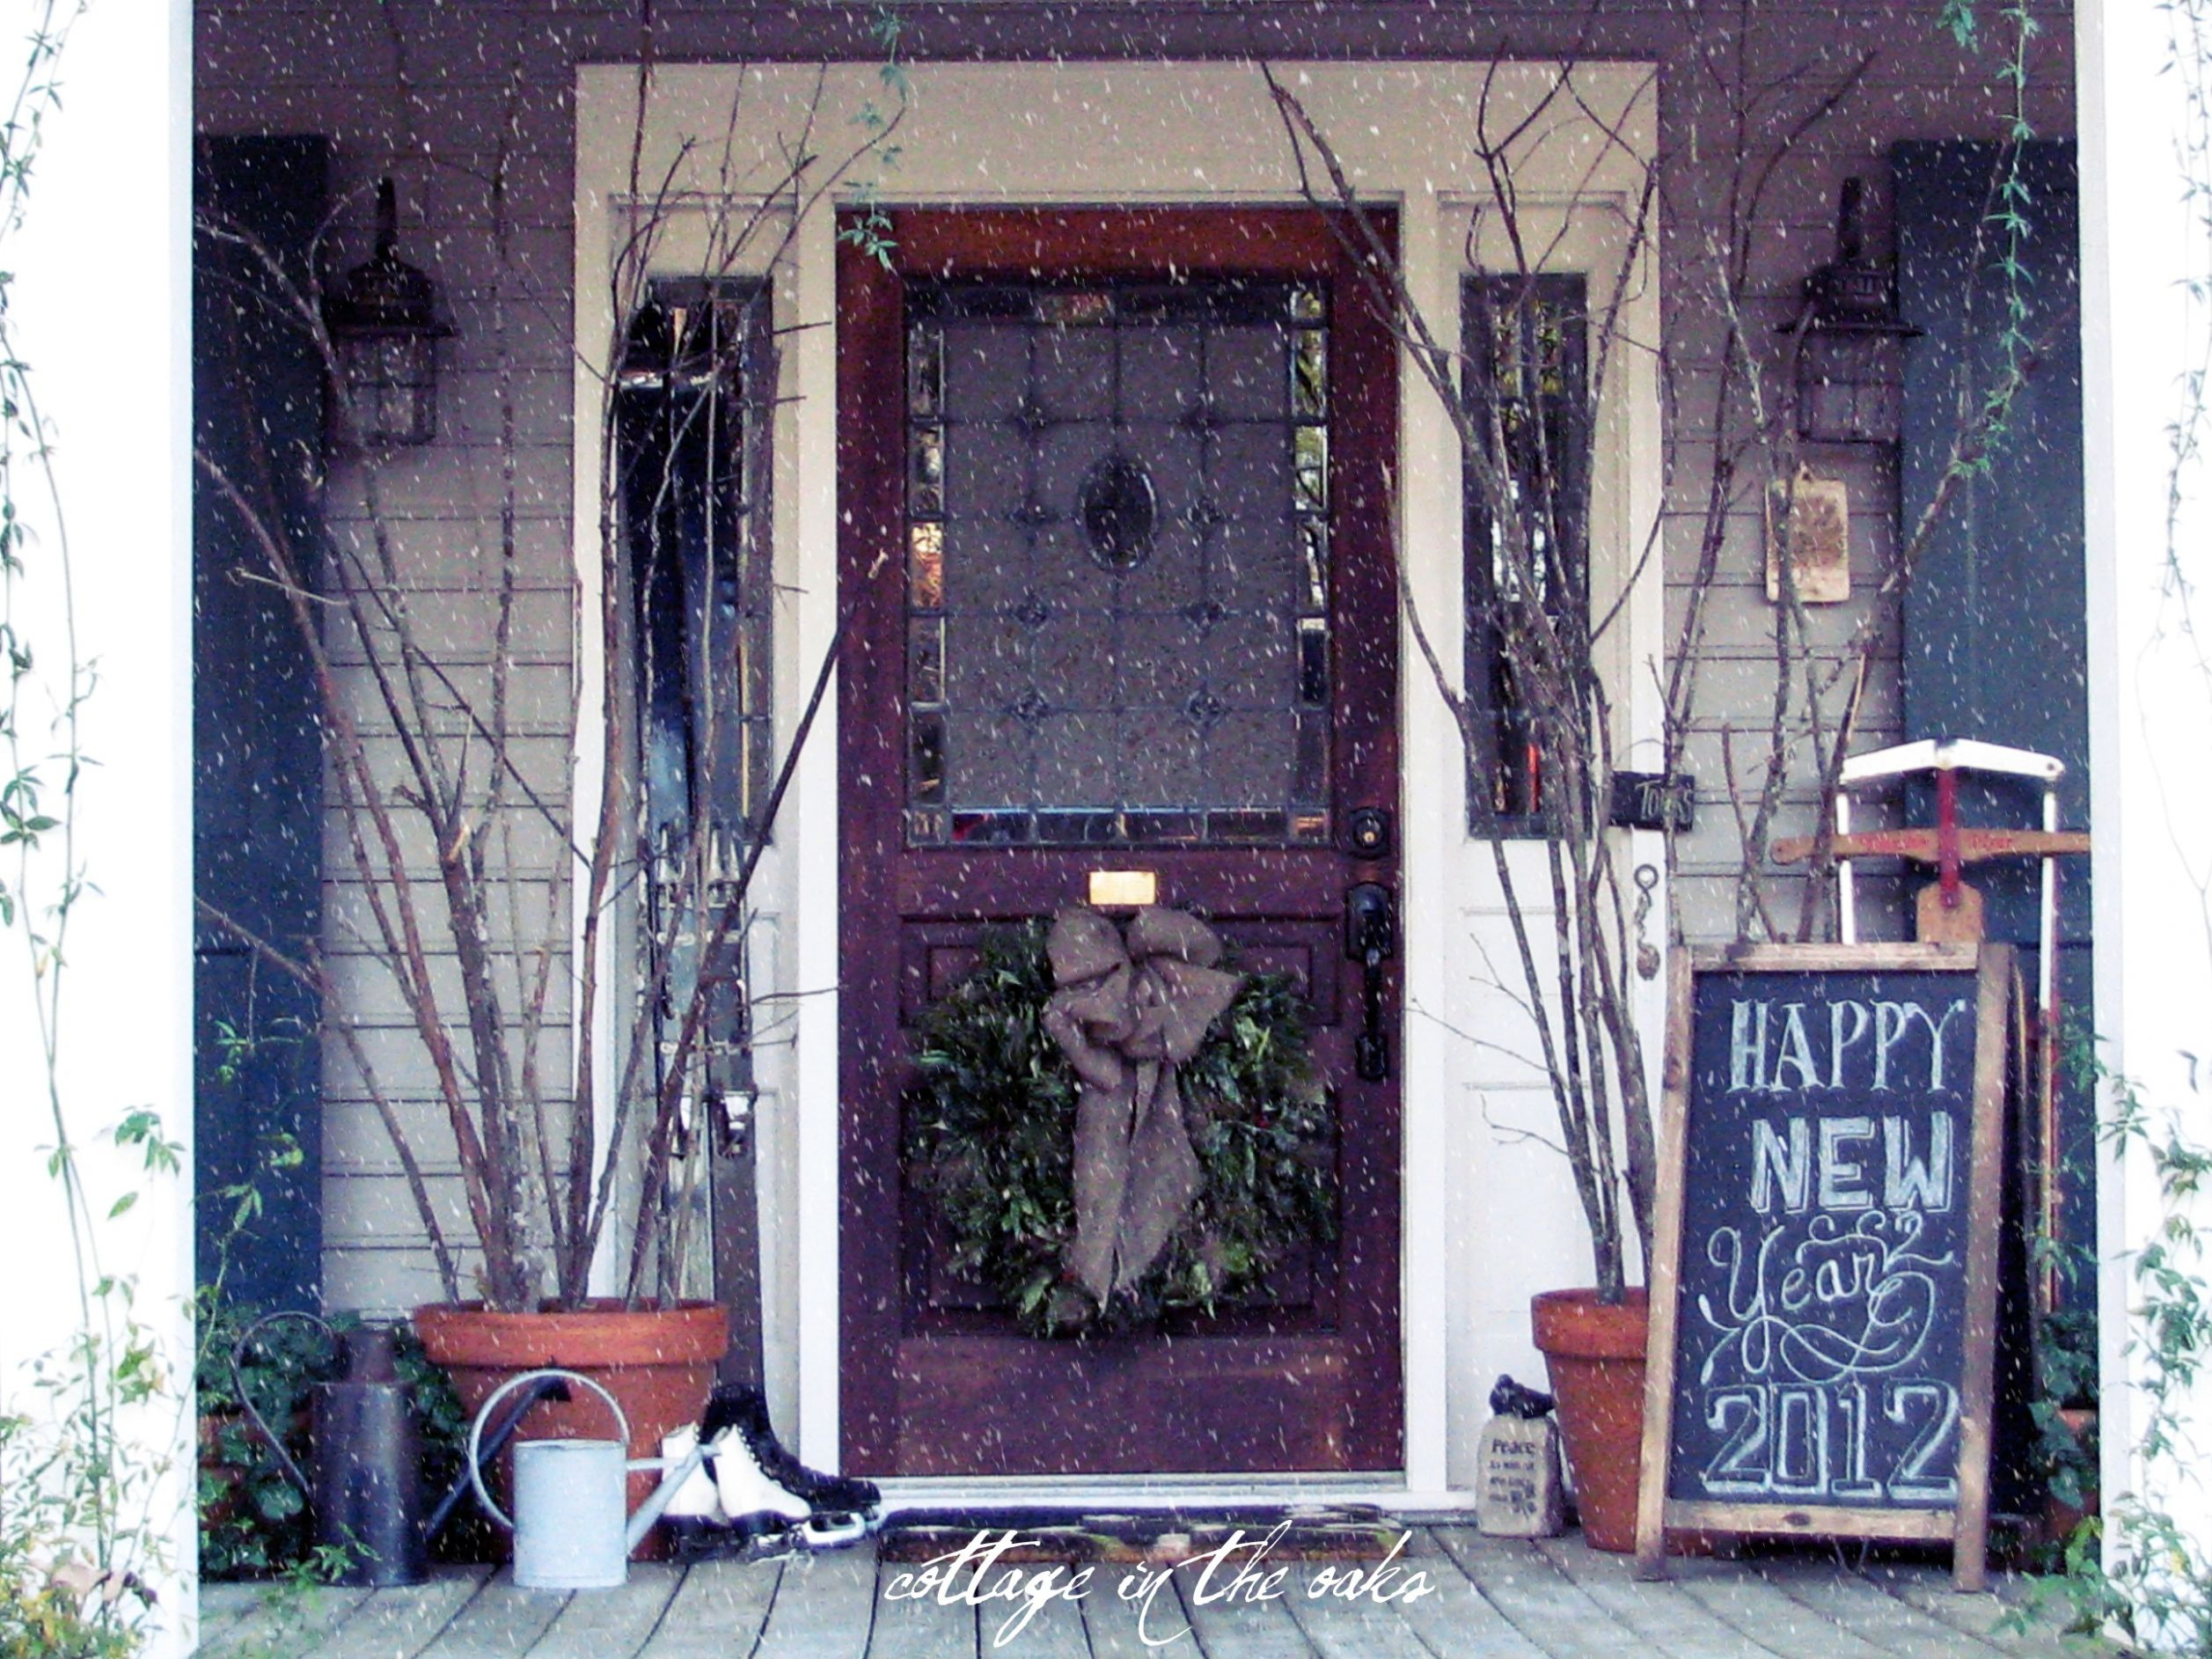 Winter Front Porch - Cottage in the Oaks - front porch decor ideas for winter